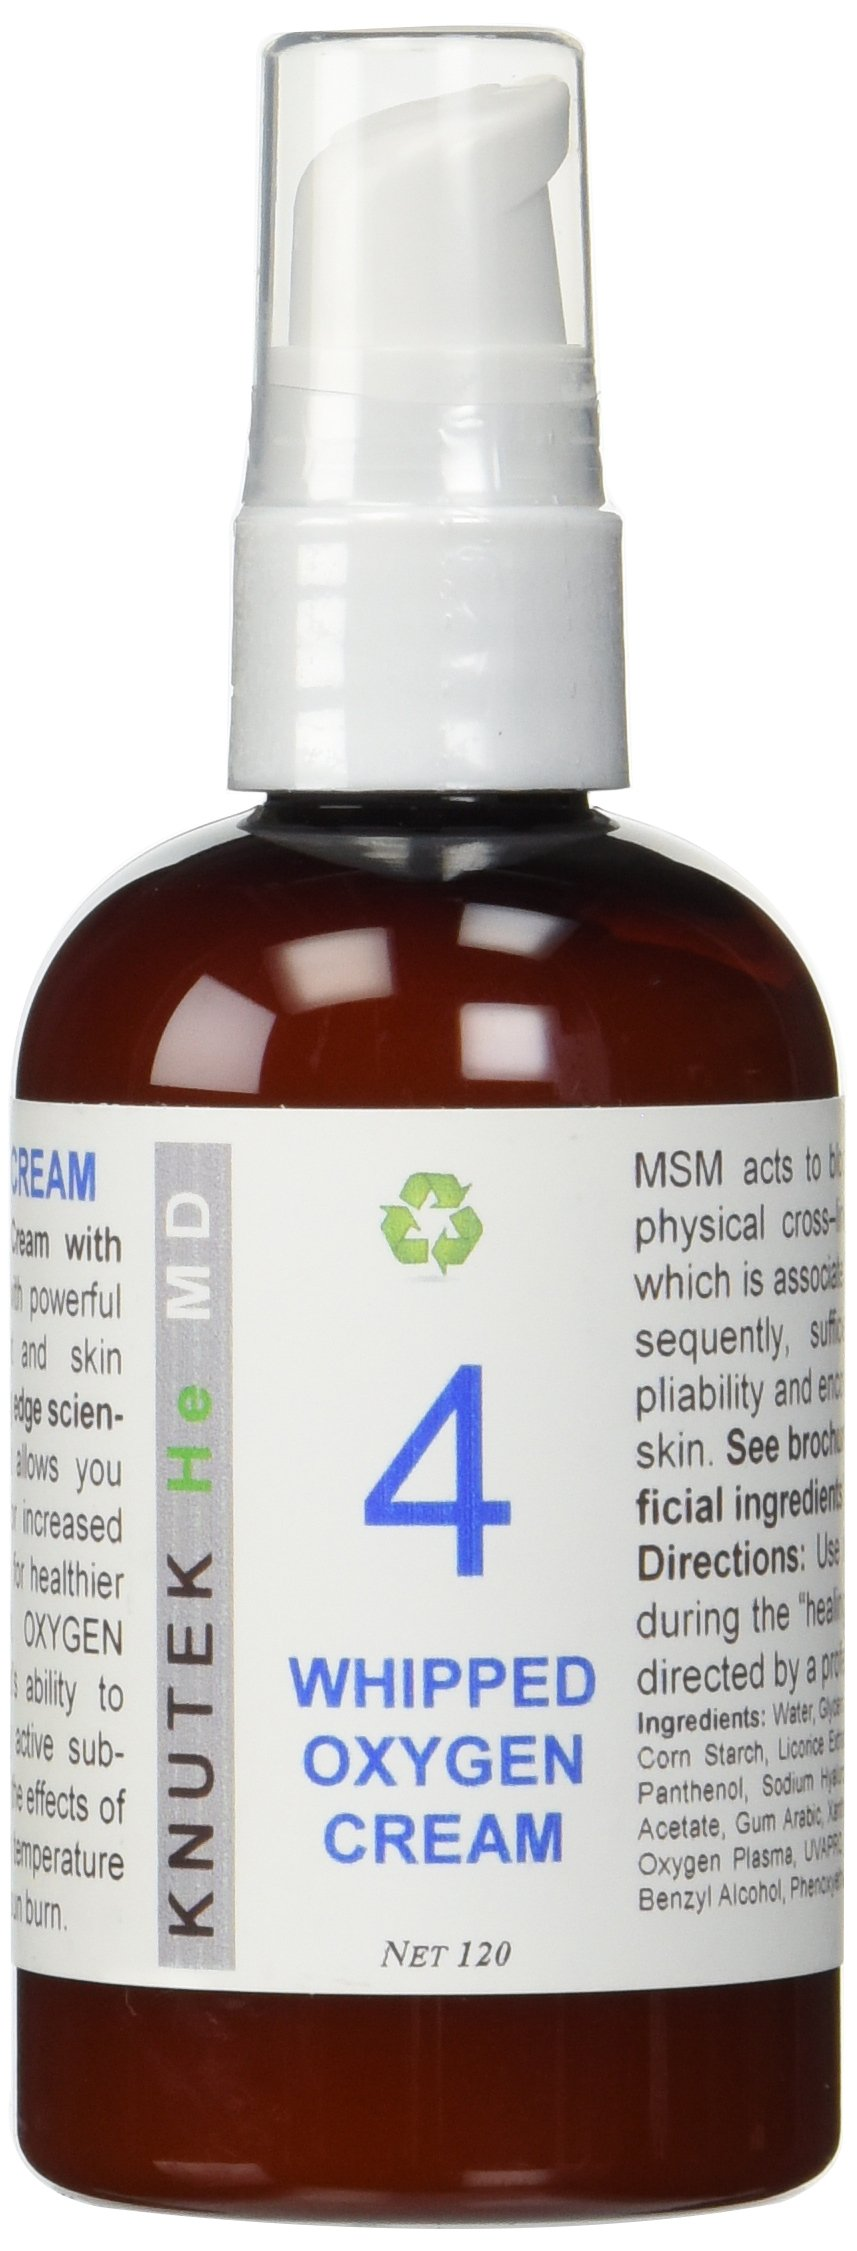 Balsam for gums Asepta: reviews, price, instructions for use 82